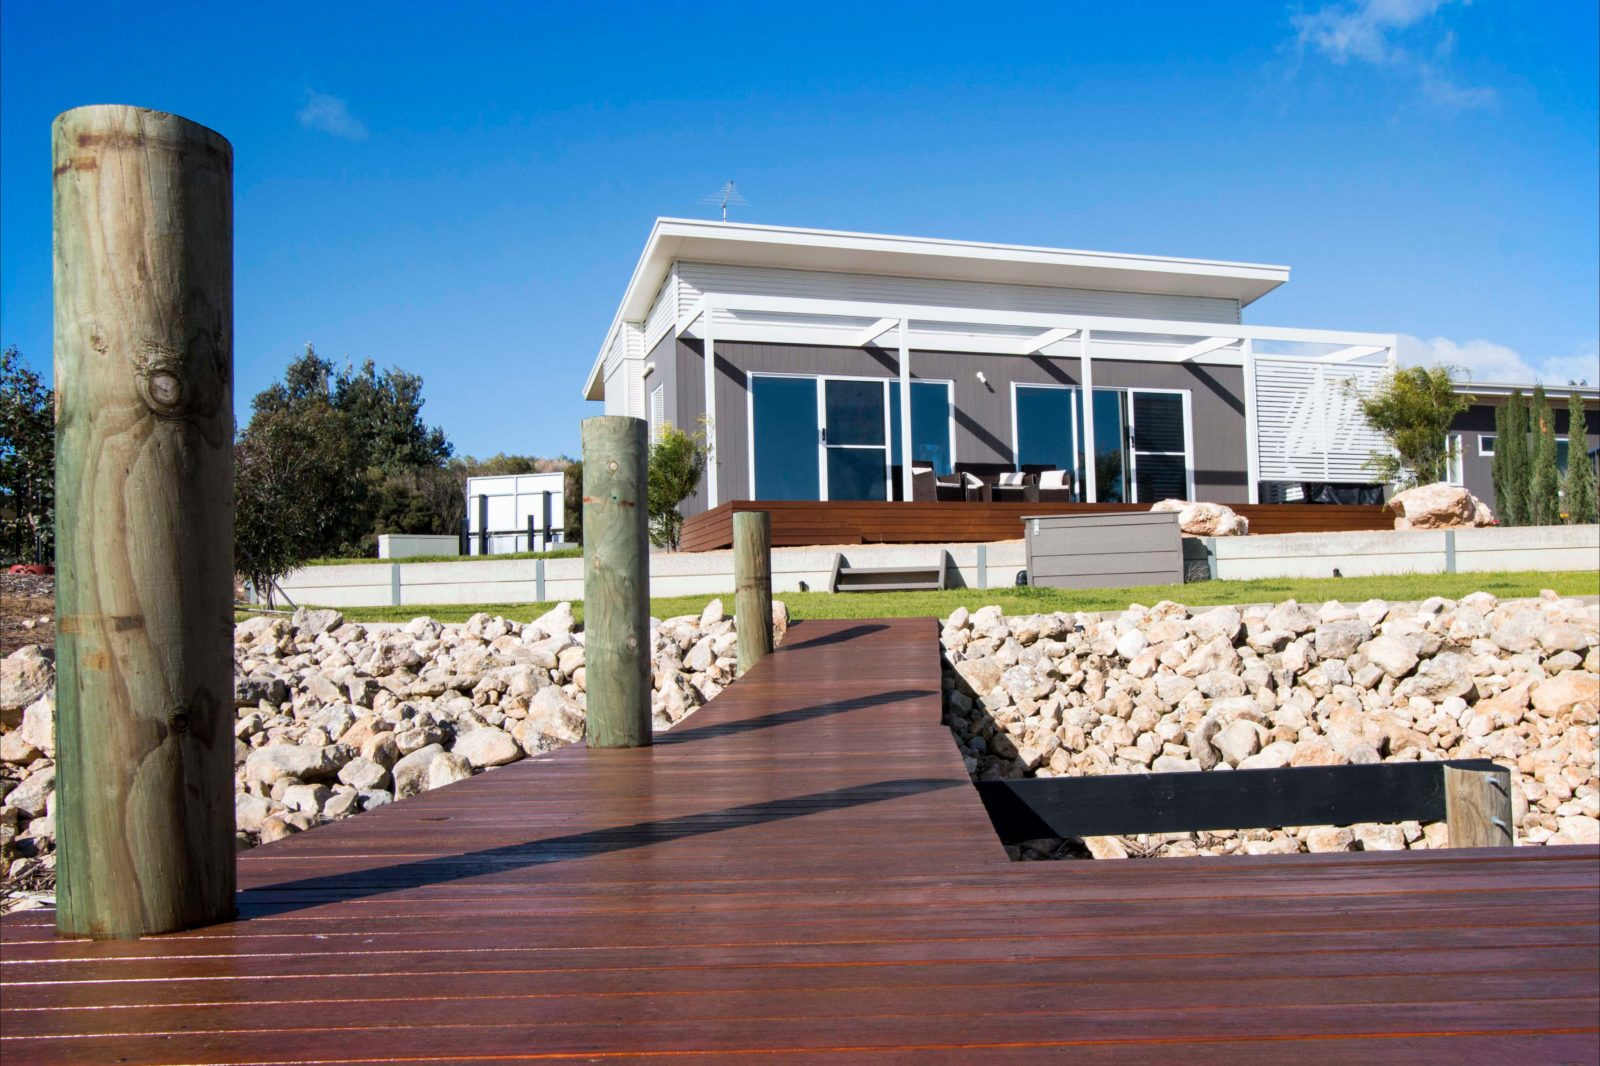 Sarah's Holiday House - modern fitout and absolute waterfront